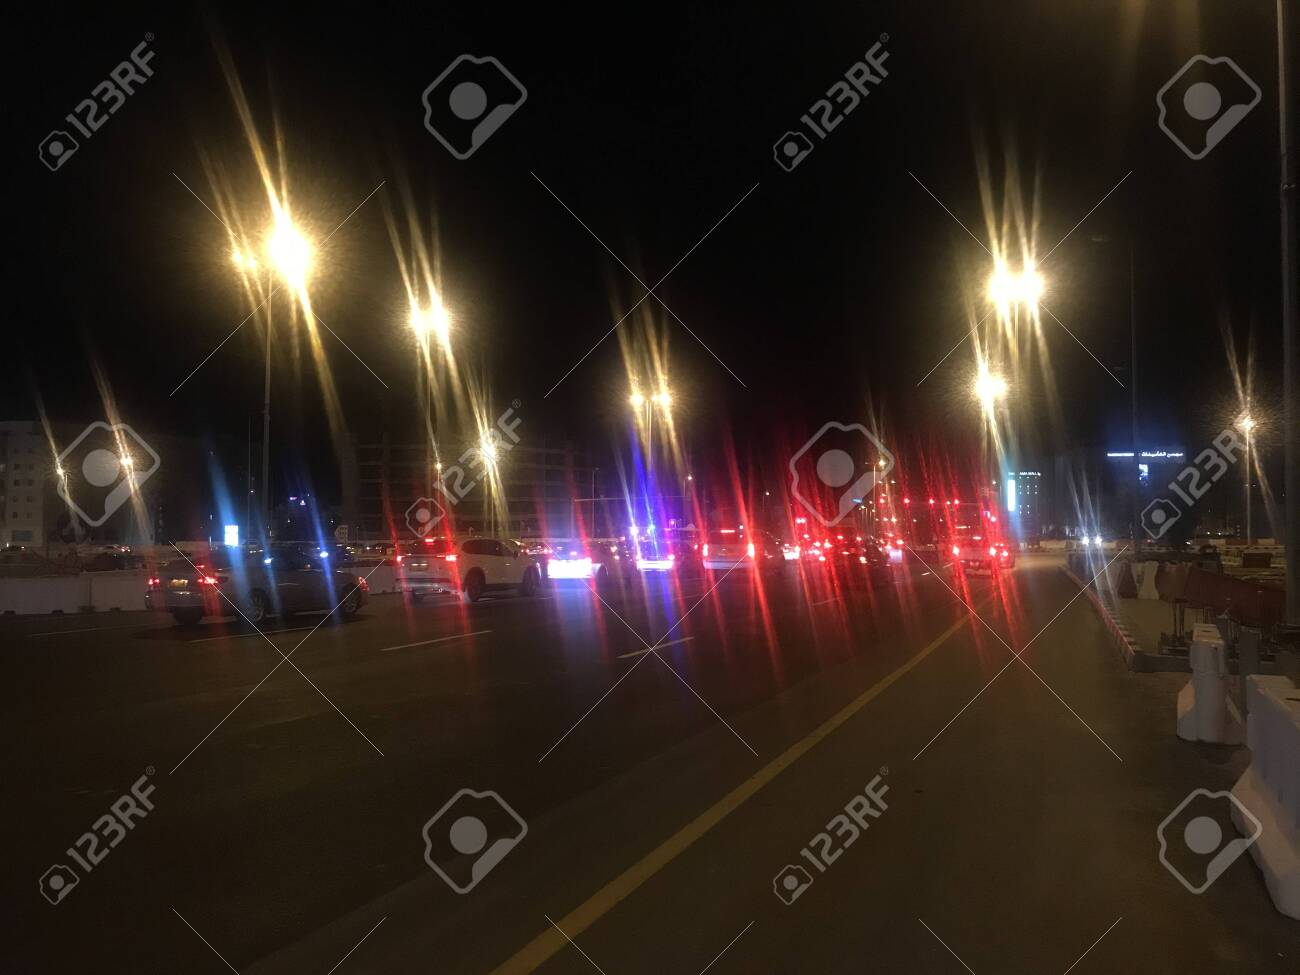 At weekend mode going to celebrate weekend in car in urban city road with glittering street lights and downtown is awesome to get themselves rock the motion of speed cars - 145574500